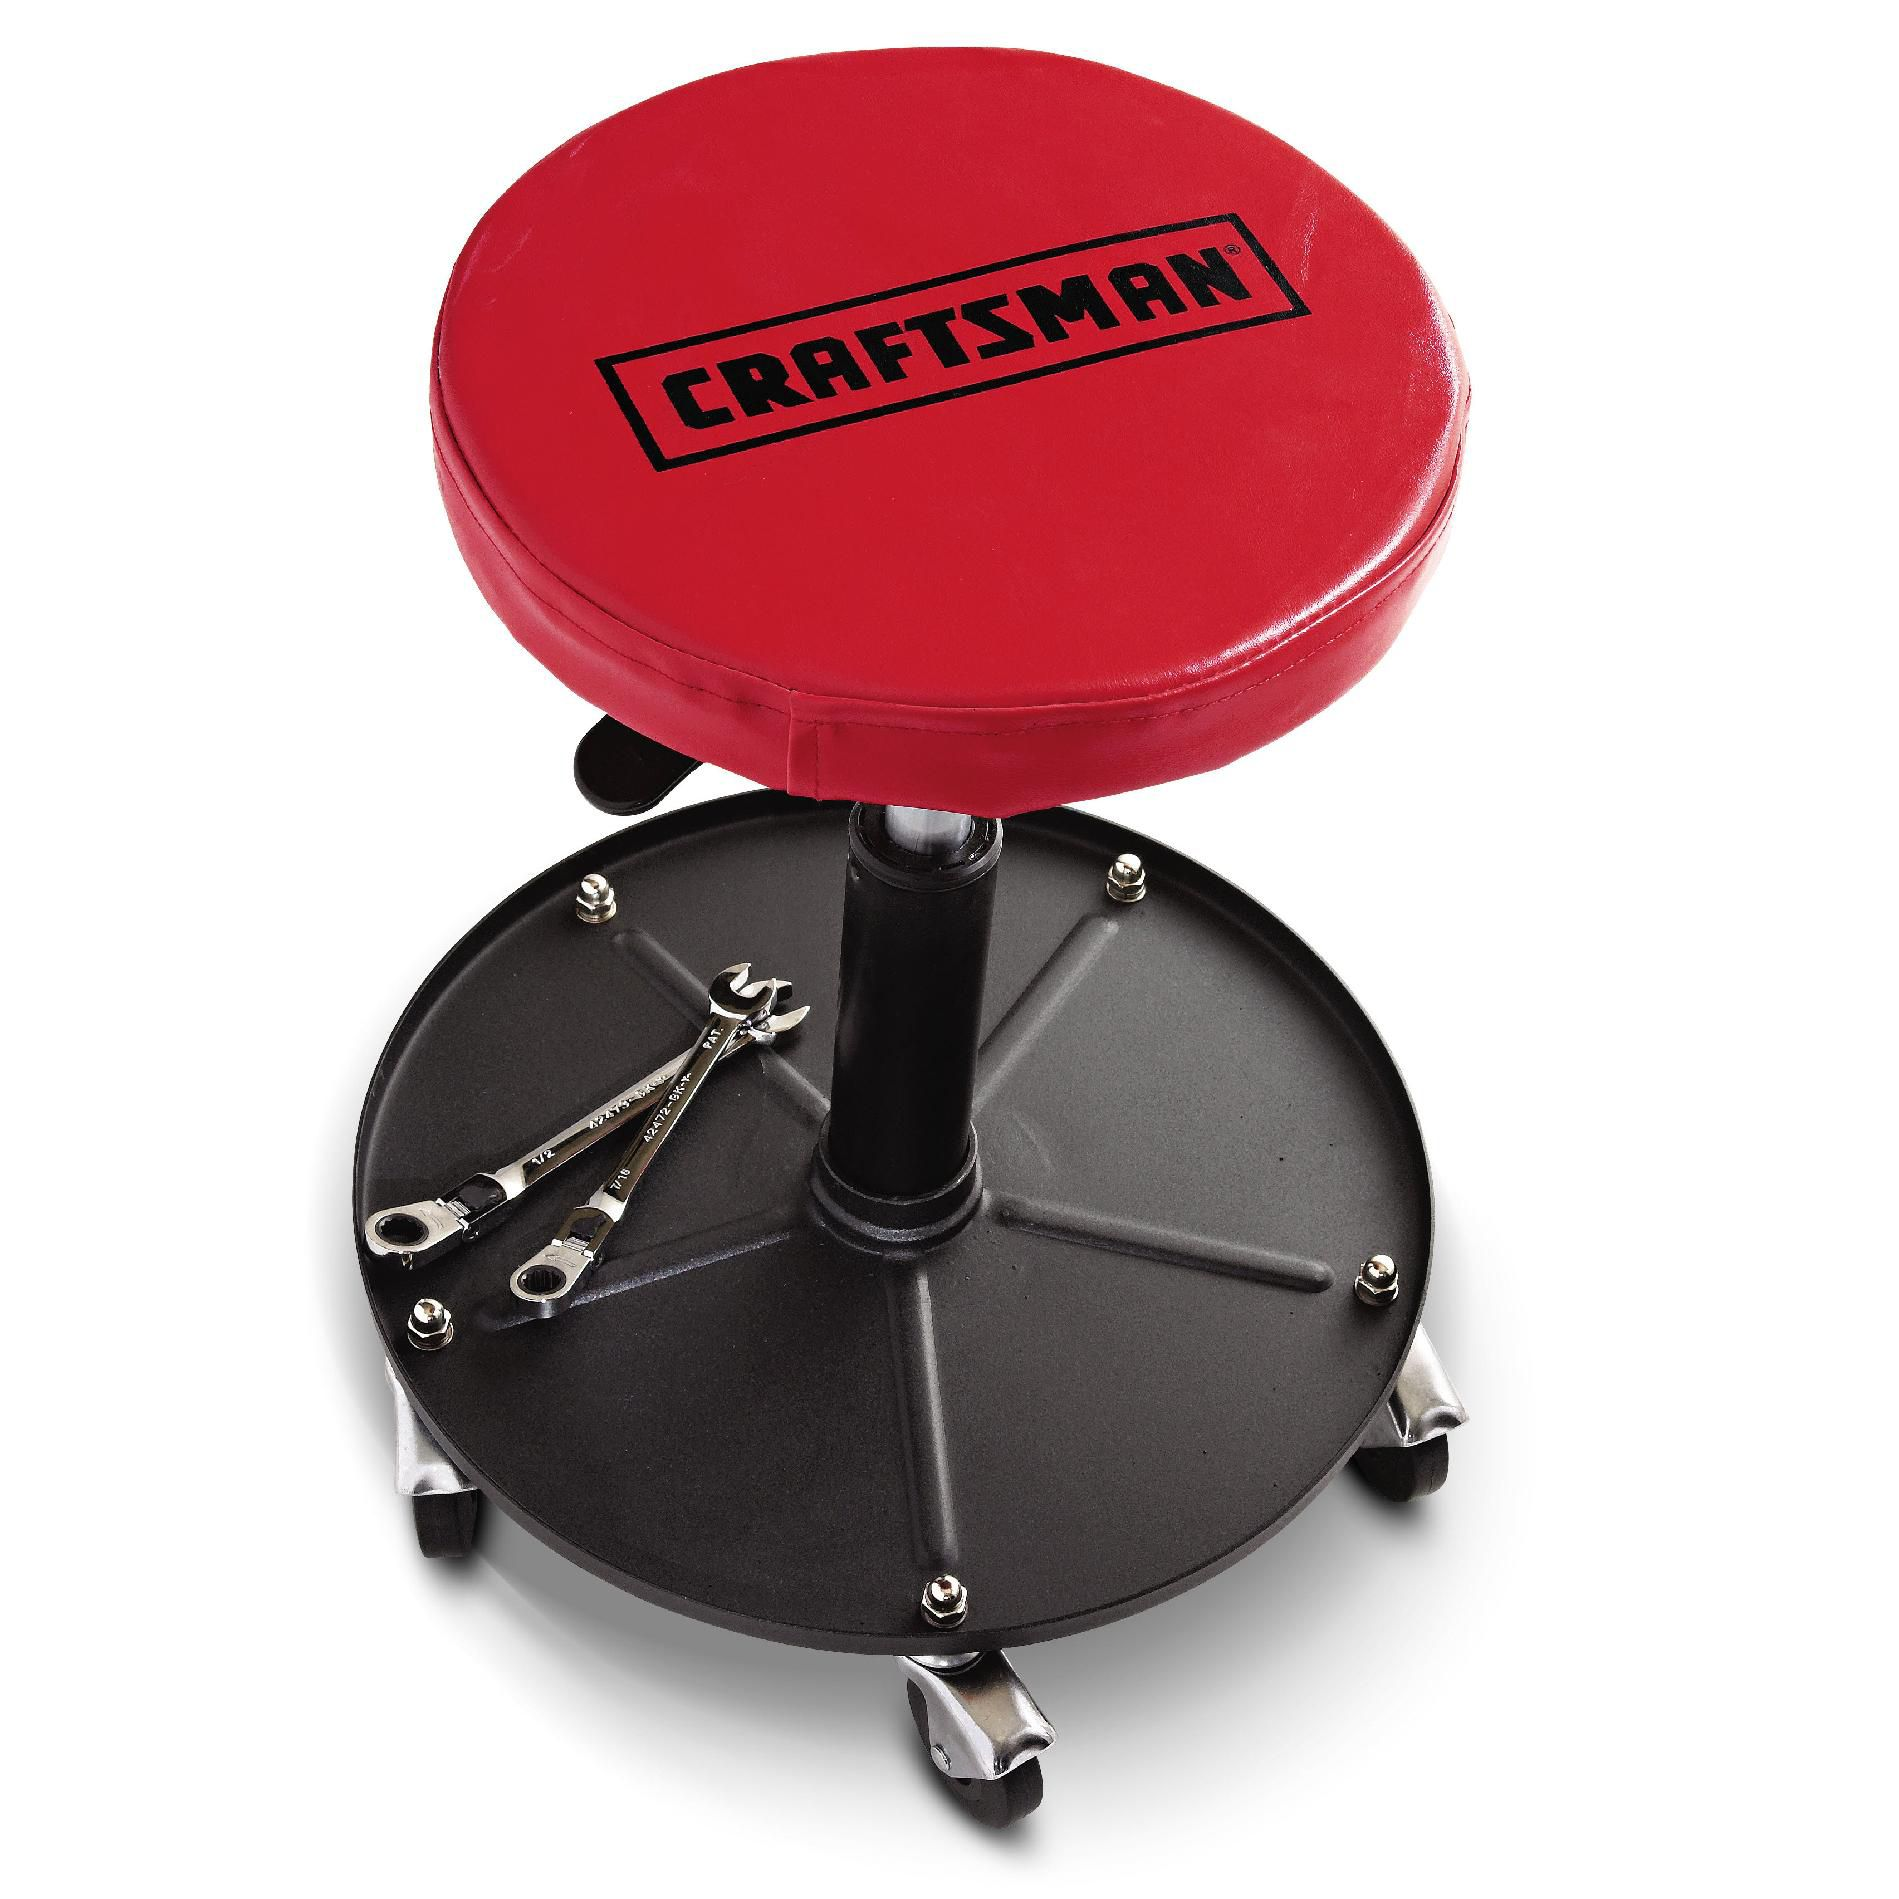 Craftsman Adjustable Mechanics Seat